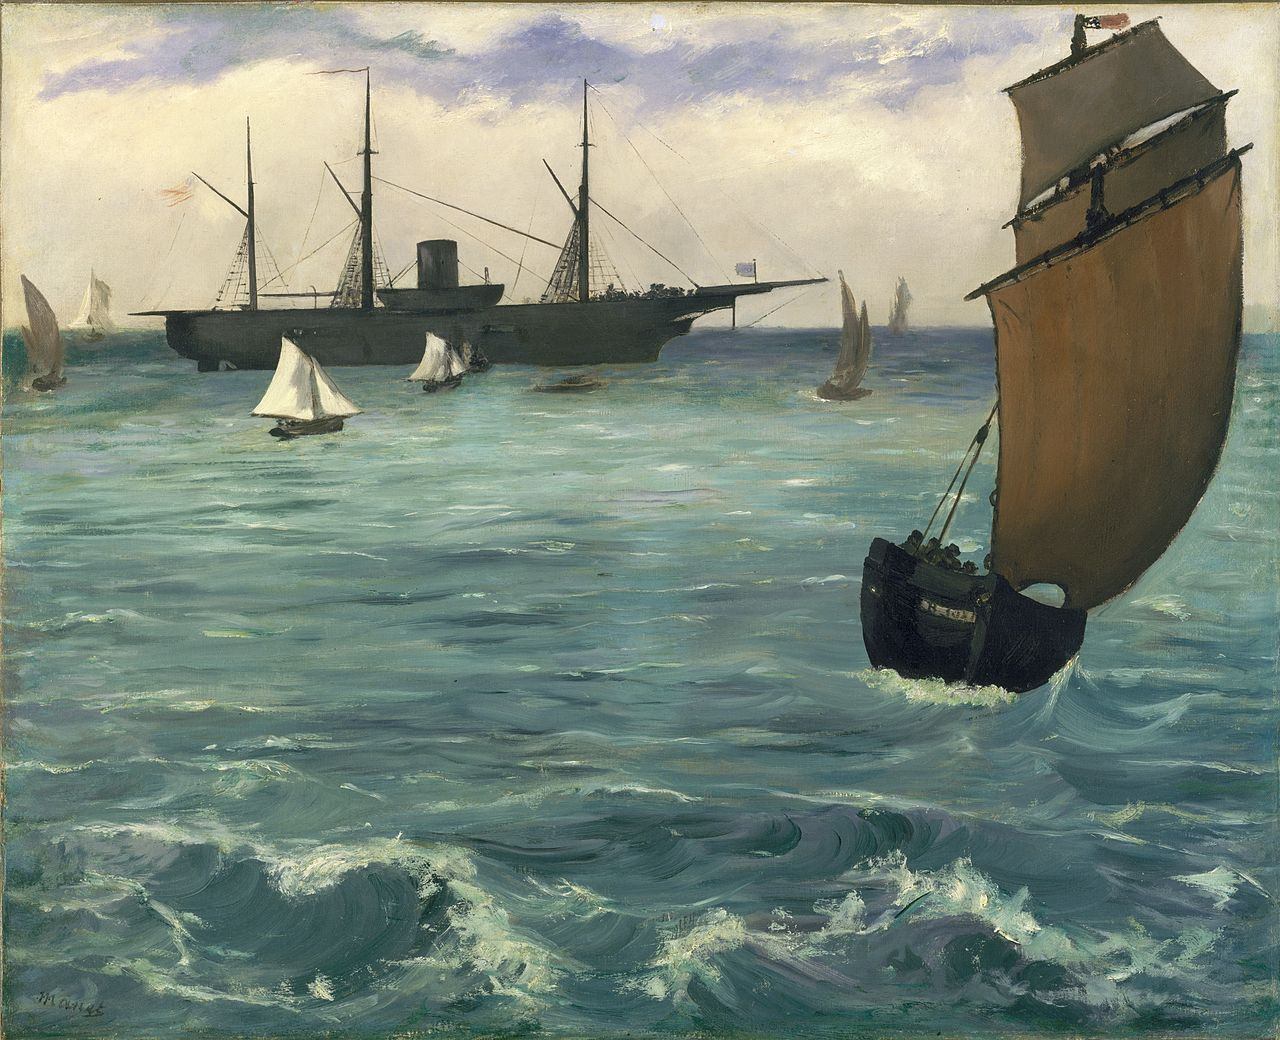 The Kearsarge at Boulogne is an 1864 painting by Édouard Manet depicting the Union cruiser USS Kearsarge, victor of the Battle of Cherbourg over the rebel privateer CSS Alabama. The painting is owned by the Metropolitan Museum of Art. The USS Kearsarge was built with lumber supplied by Joseph Barnard.